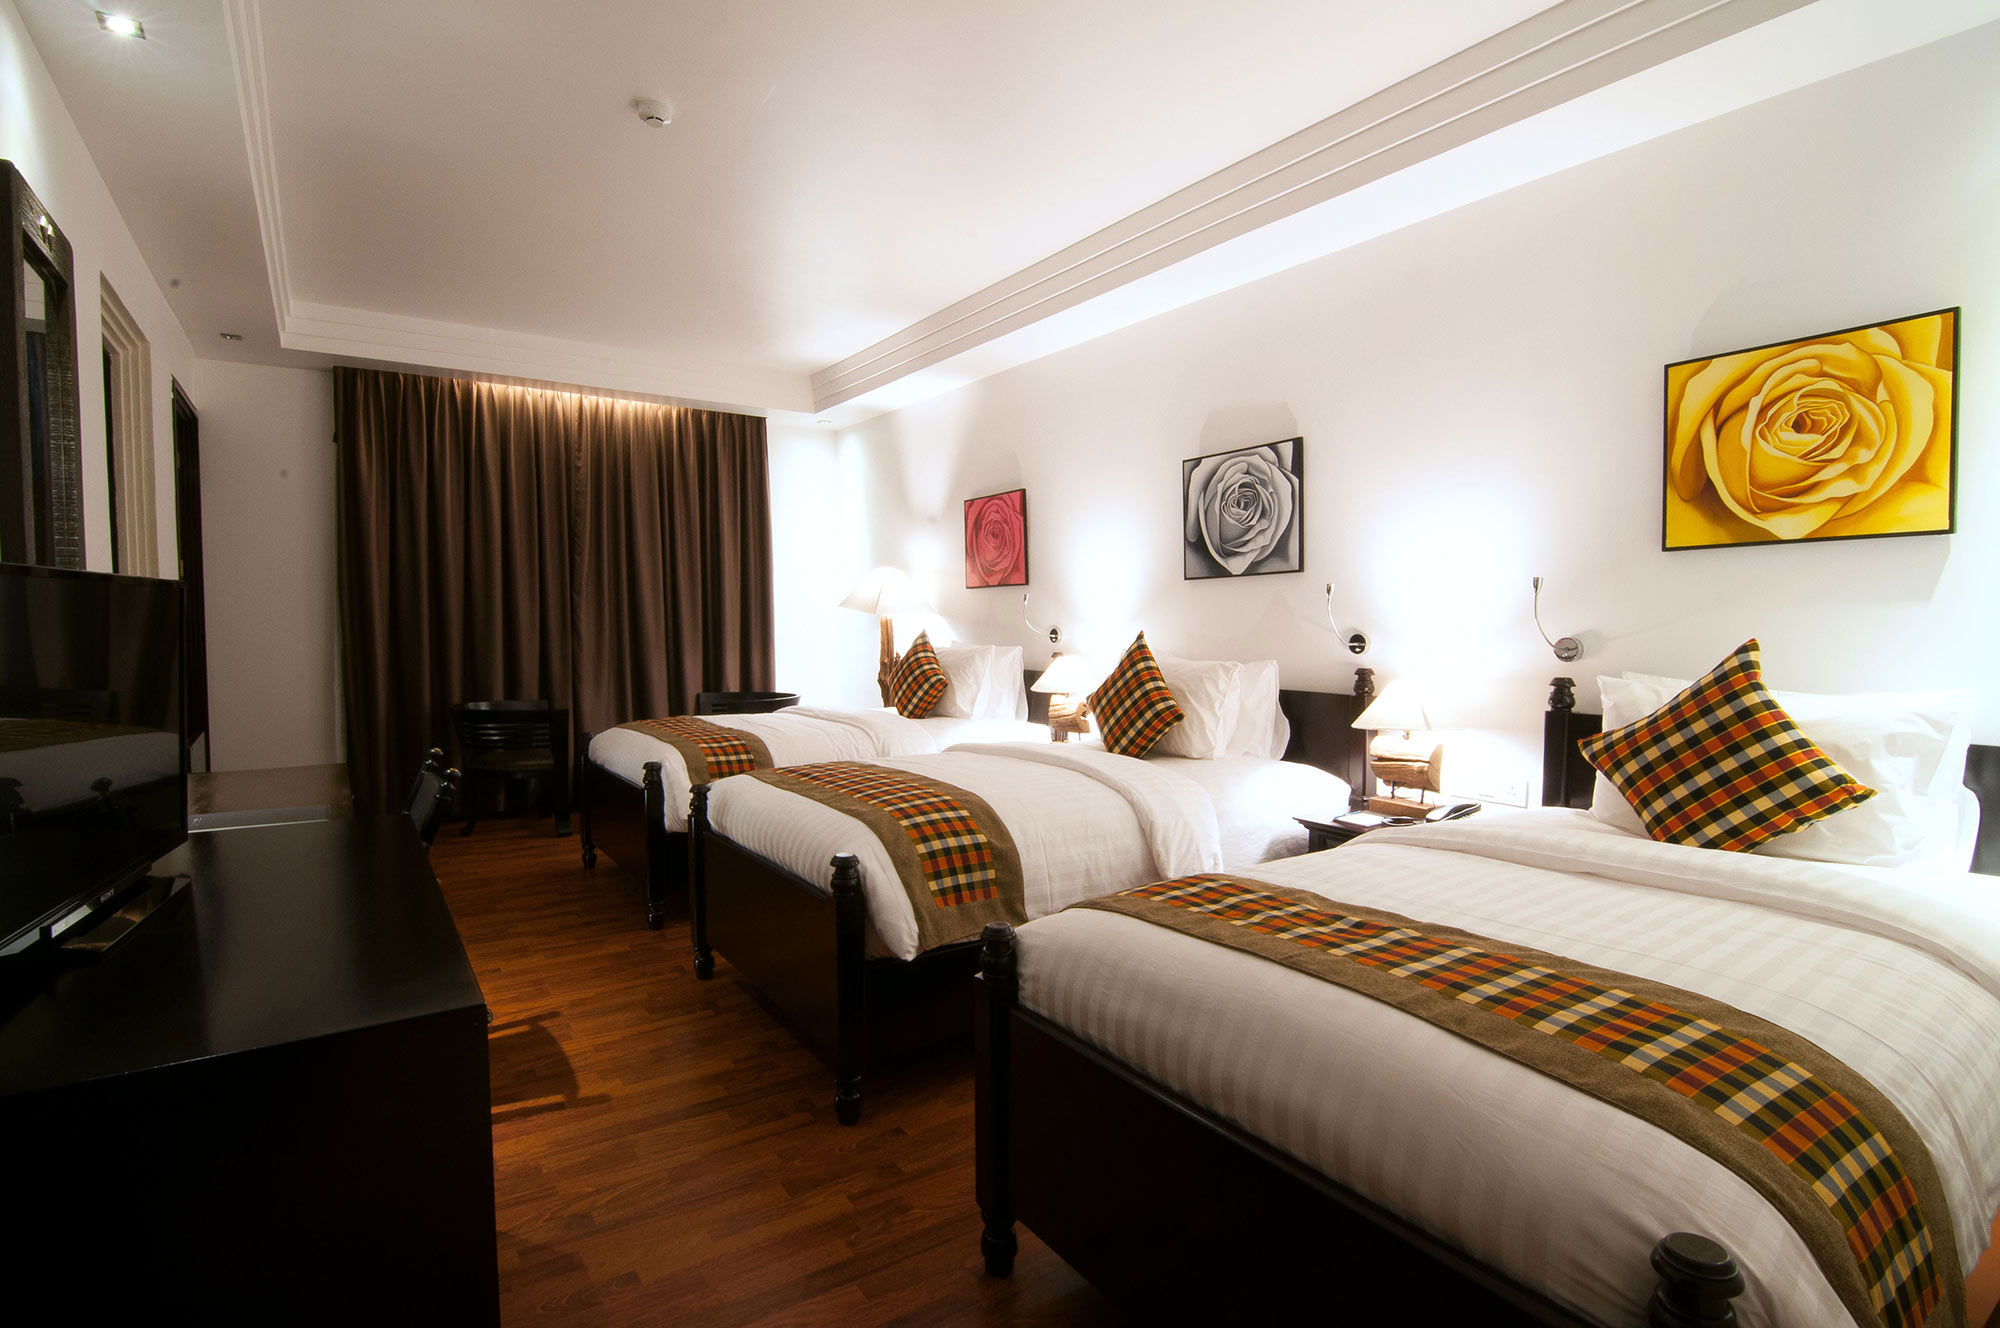 A bedroom suite with three beds along a wall at La Rose Suites, Phnom Penh's first 5-star boutique hotel, Cambodia